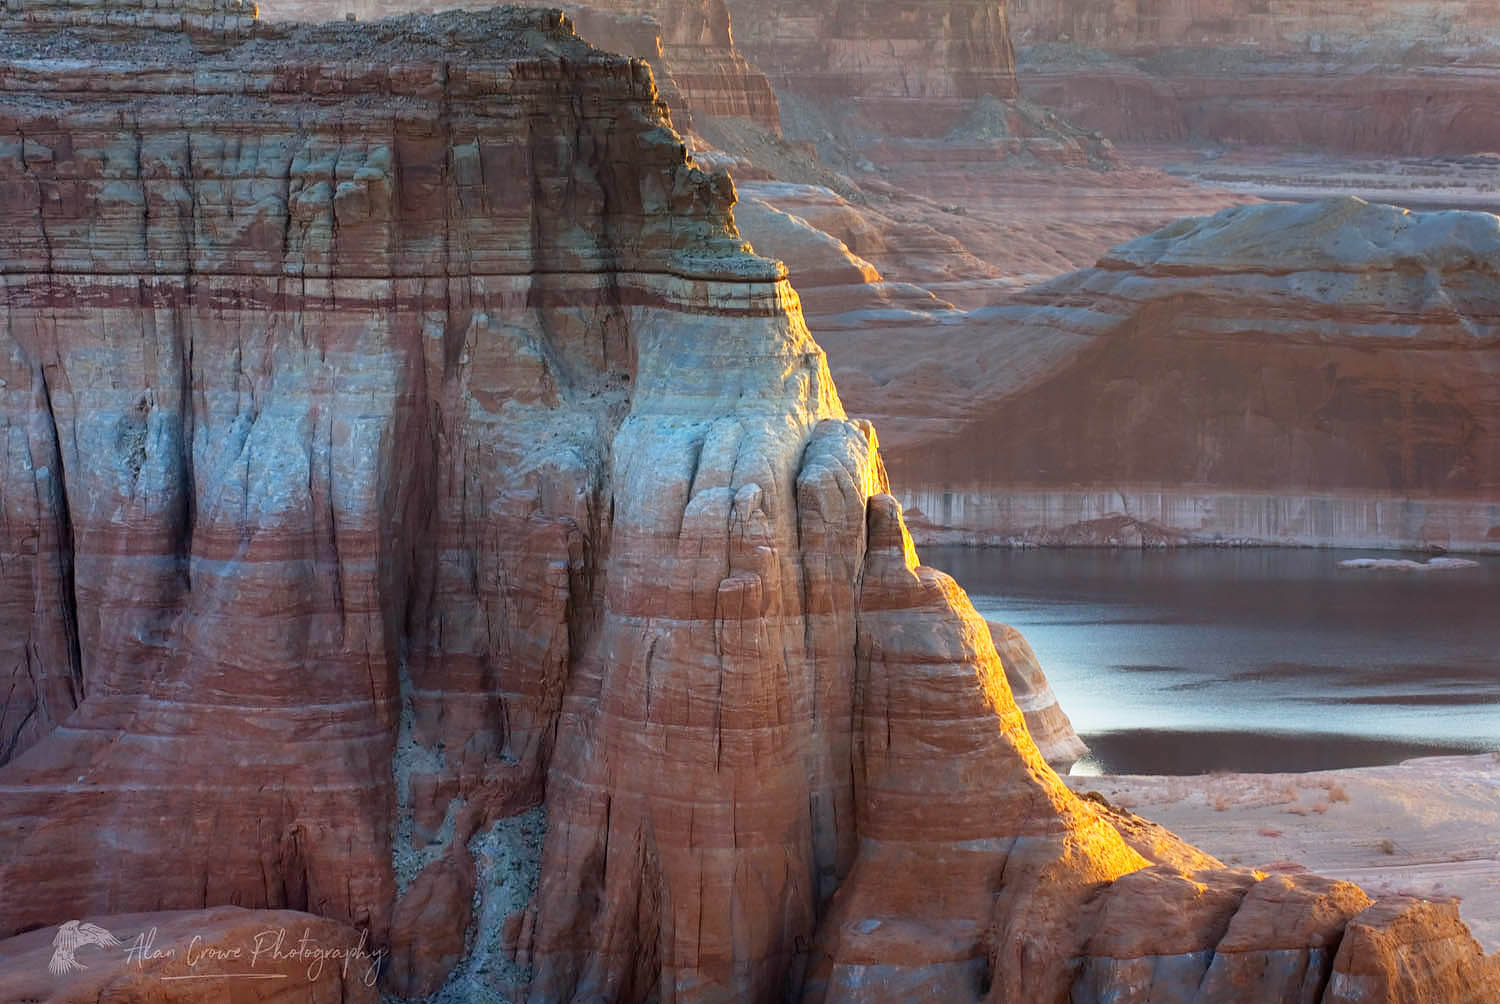 Alstrom Point, Glen Canyon National Recreation Area